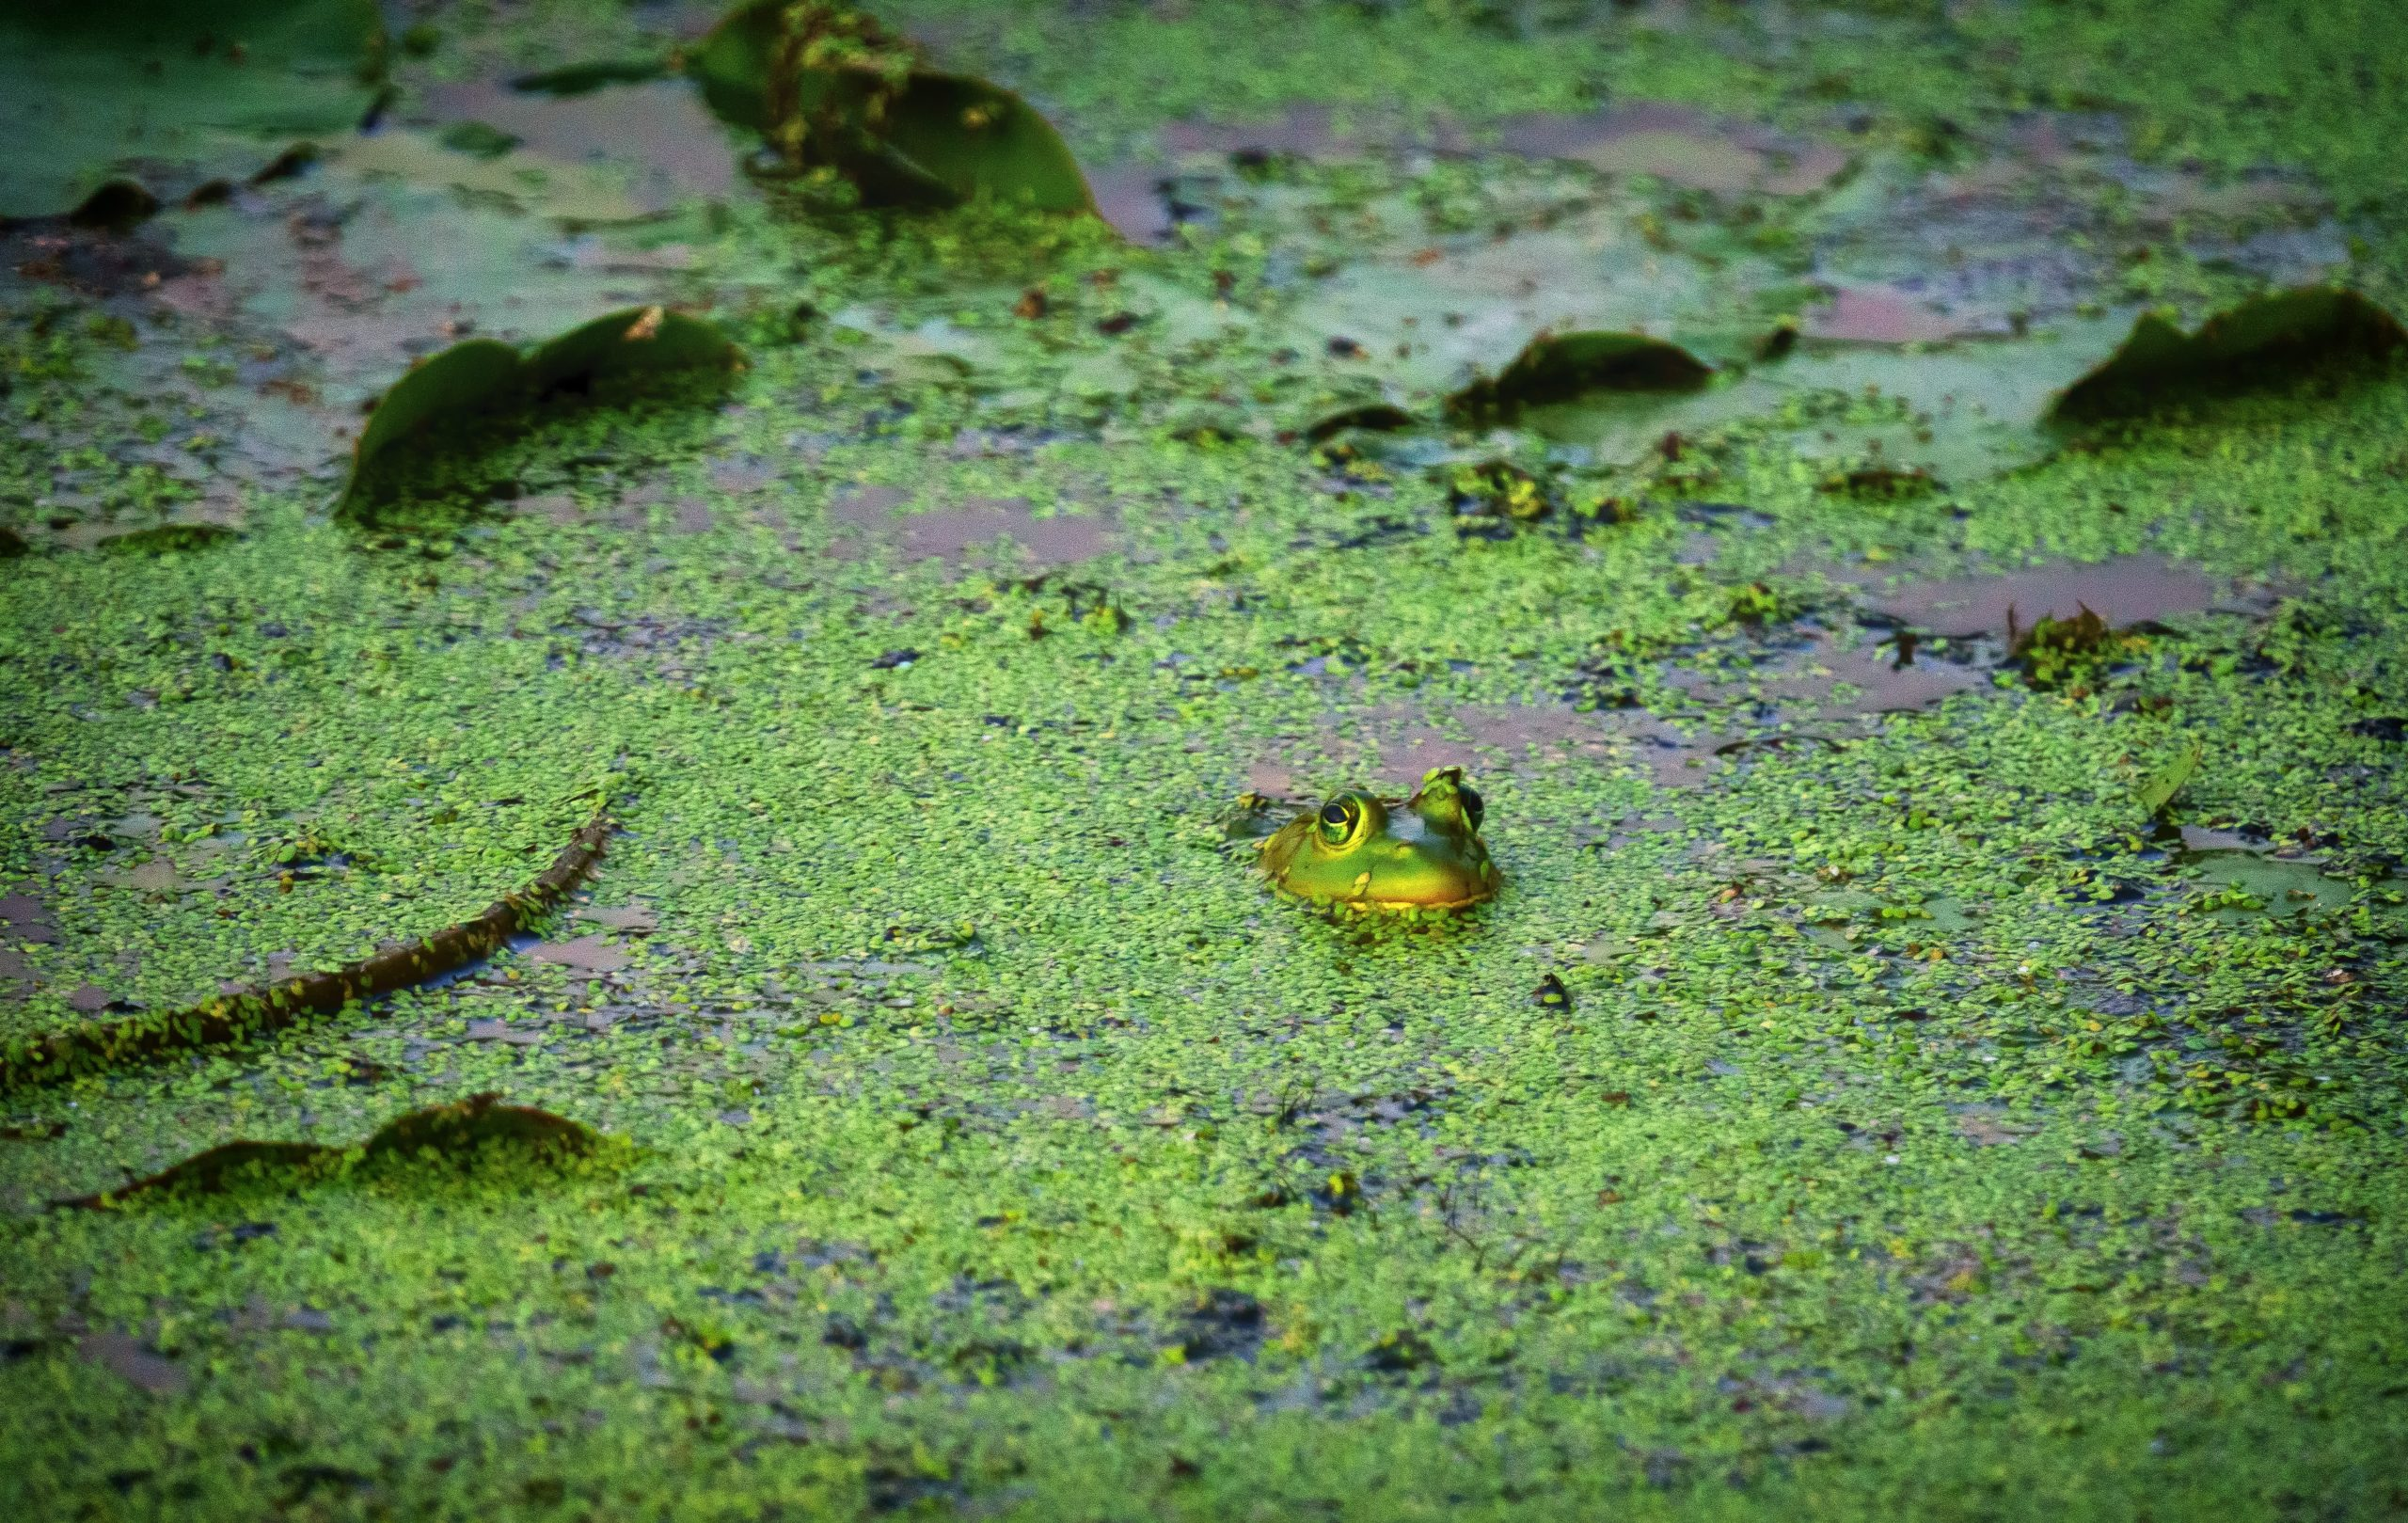 A frog pokes its head out of a mossy wetland.